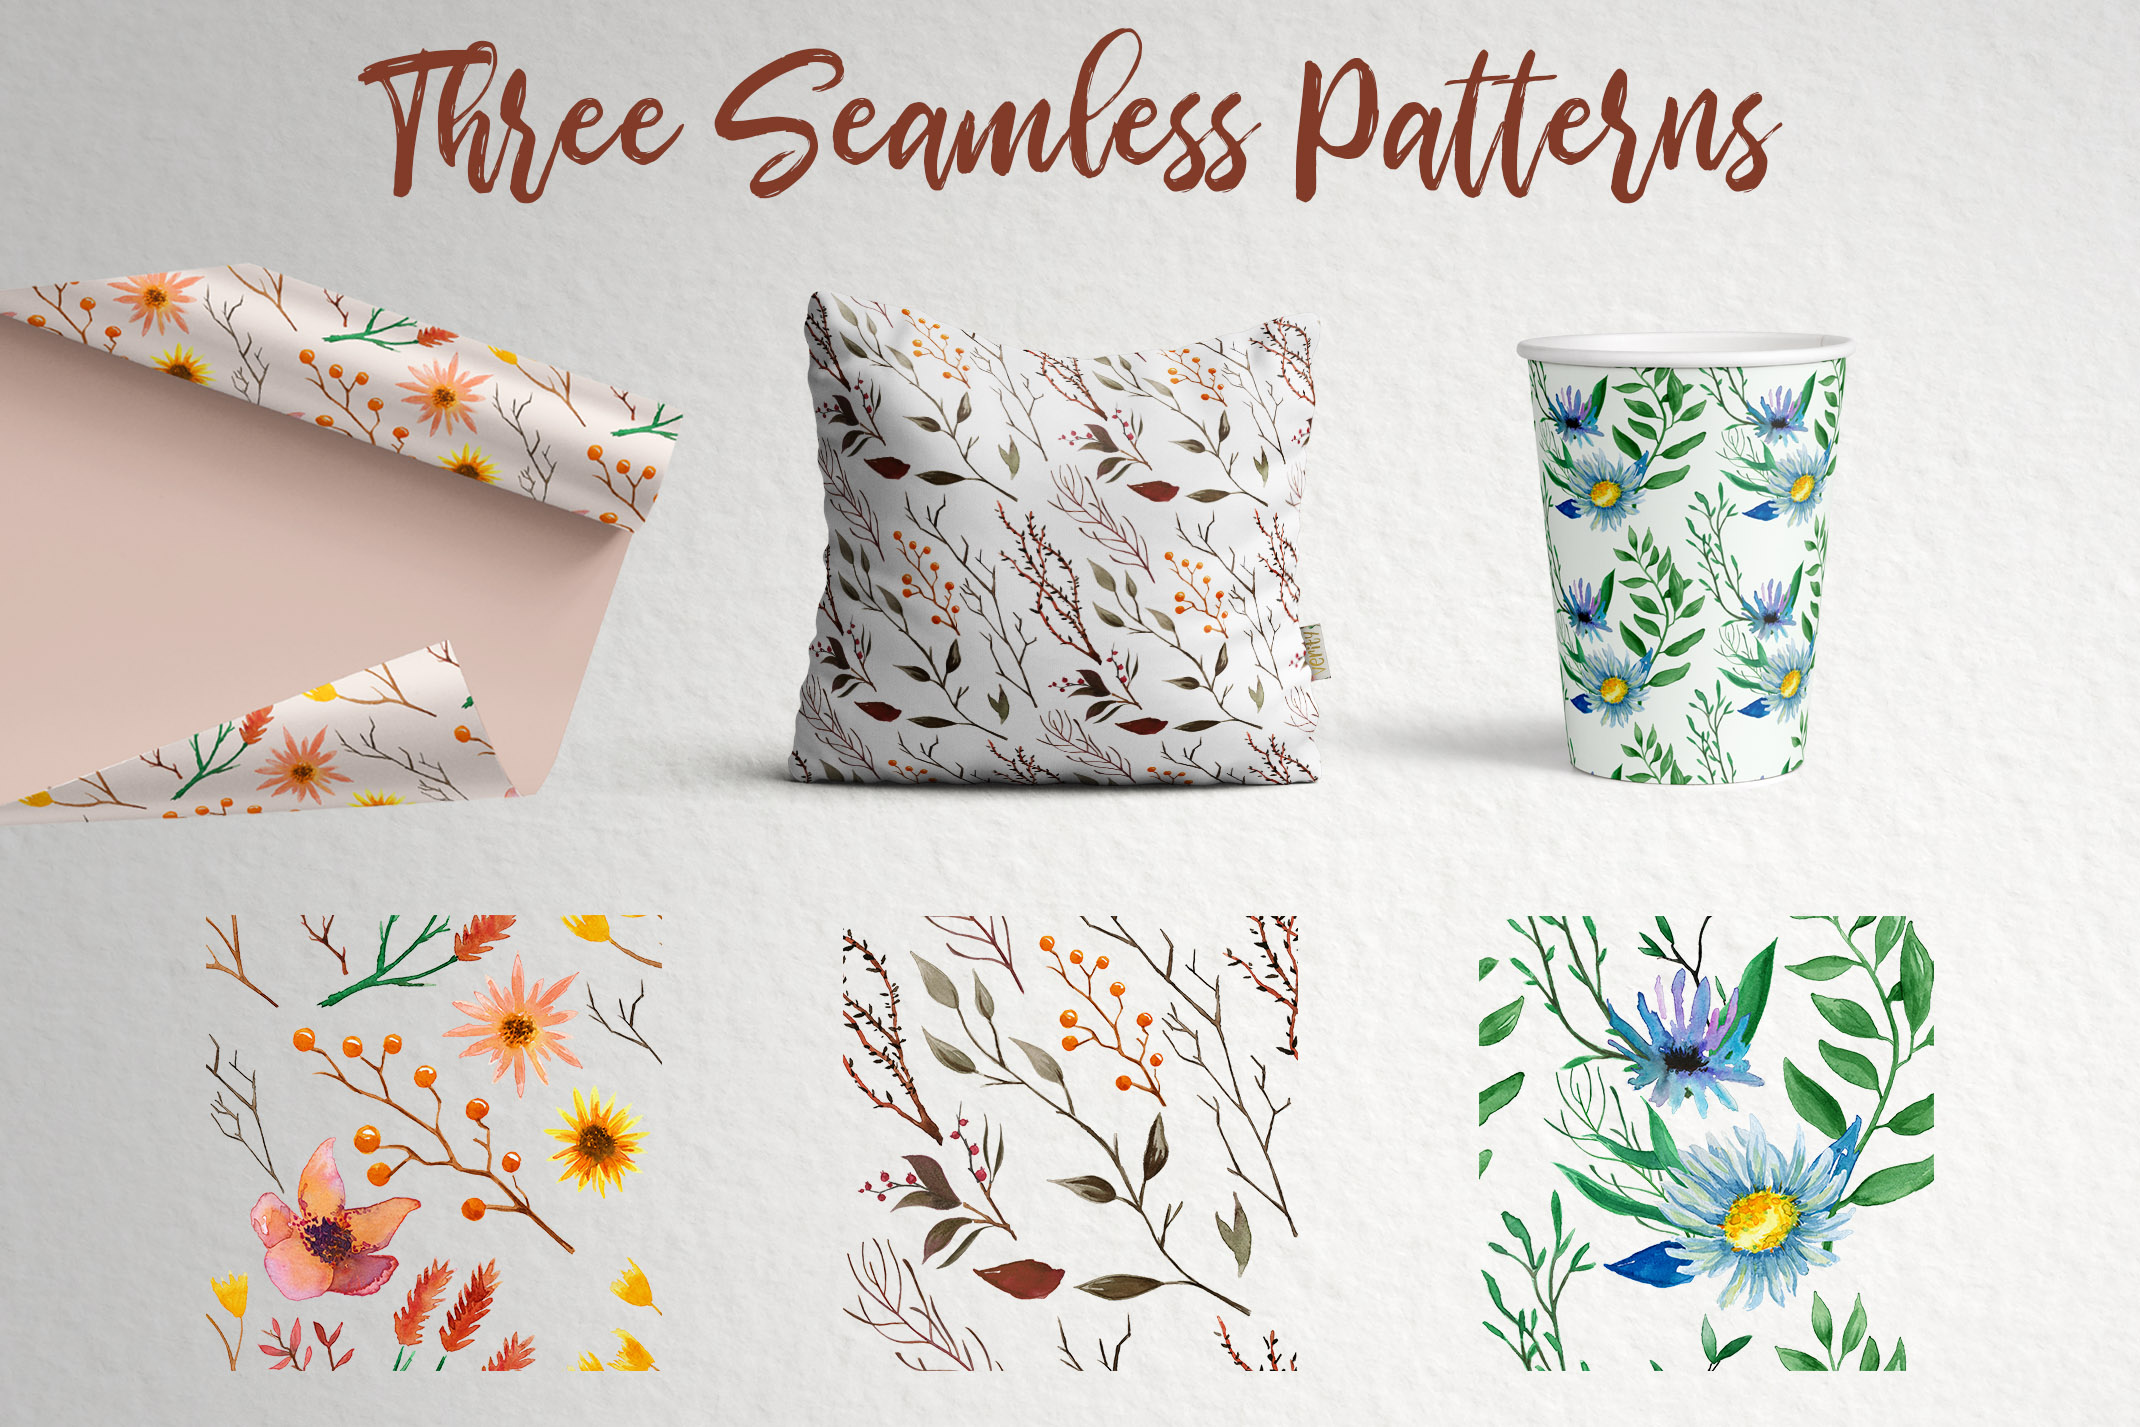 Watercolor Floral Essence Clip Art Pack example image 2